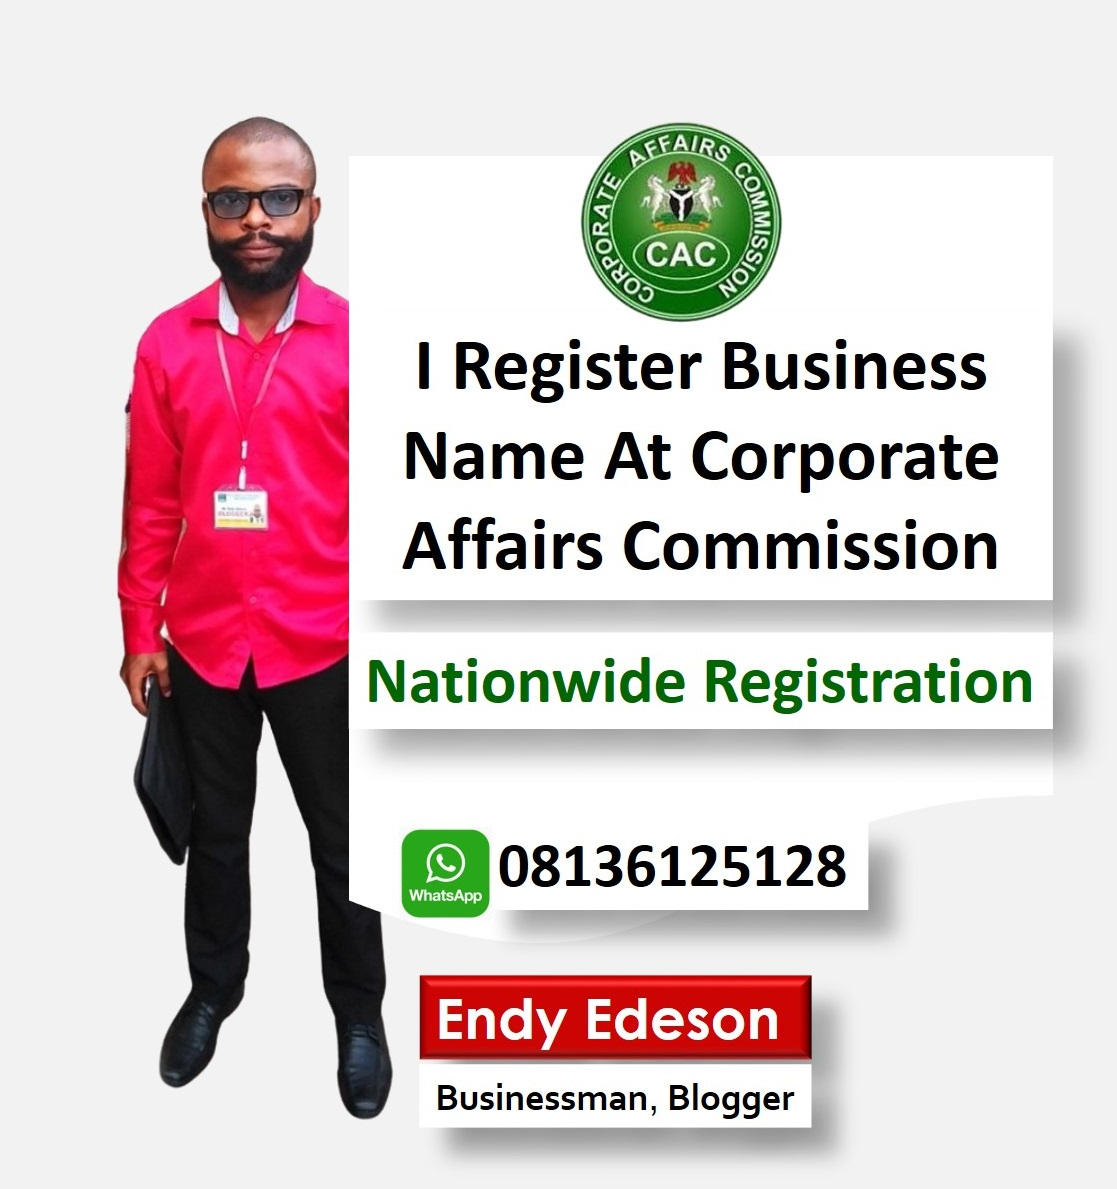 Contact Edeson To Register Your Business